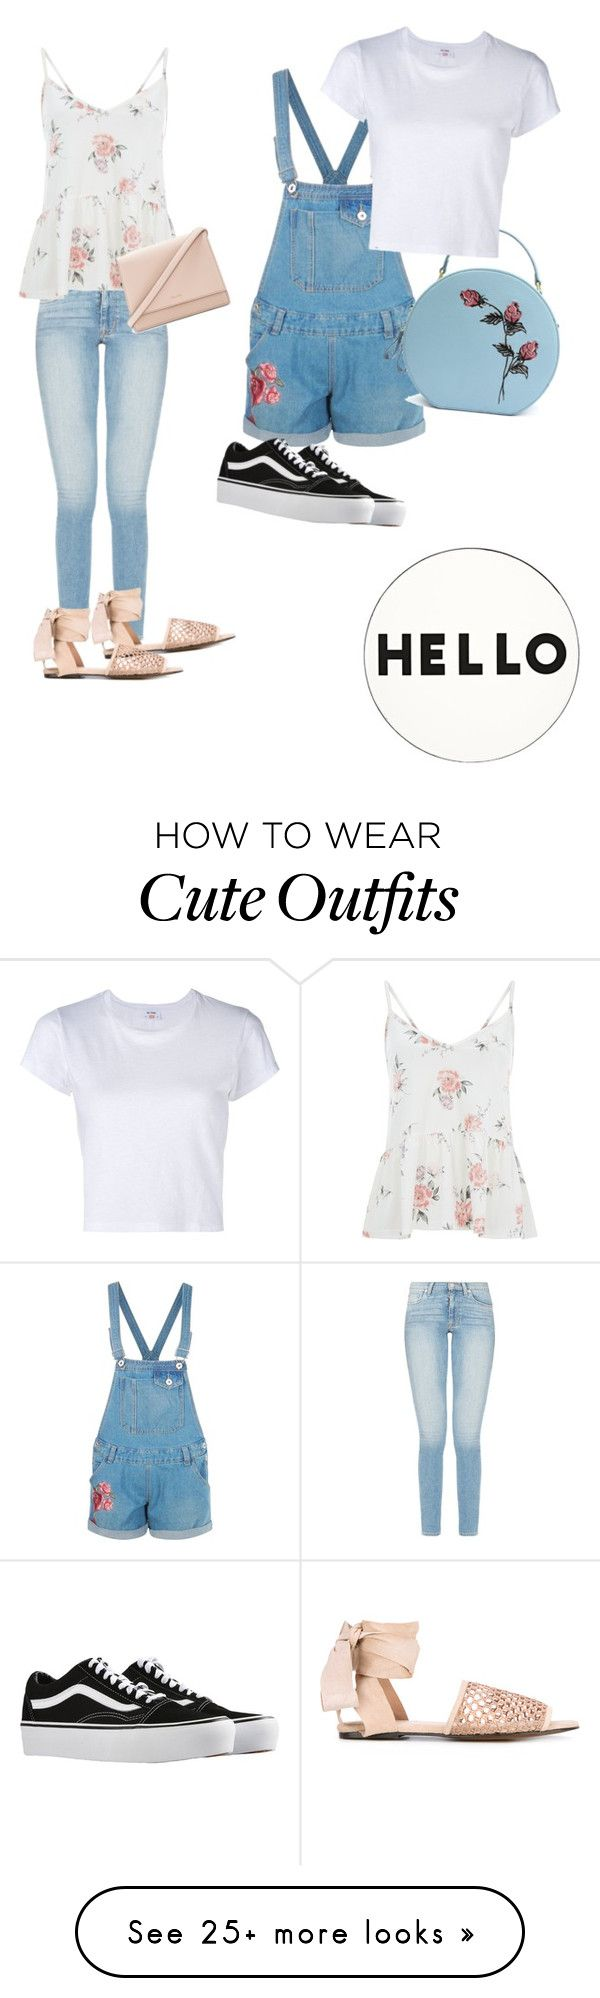 """^-^cute outfits^-^"" by kawaiikitty21 on Polyvore featuring Castañer, Boohoo, RE/DONE, Vans, Kate Spade and Lisa Perry"